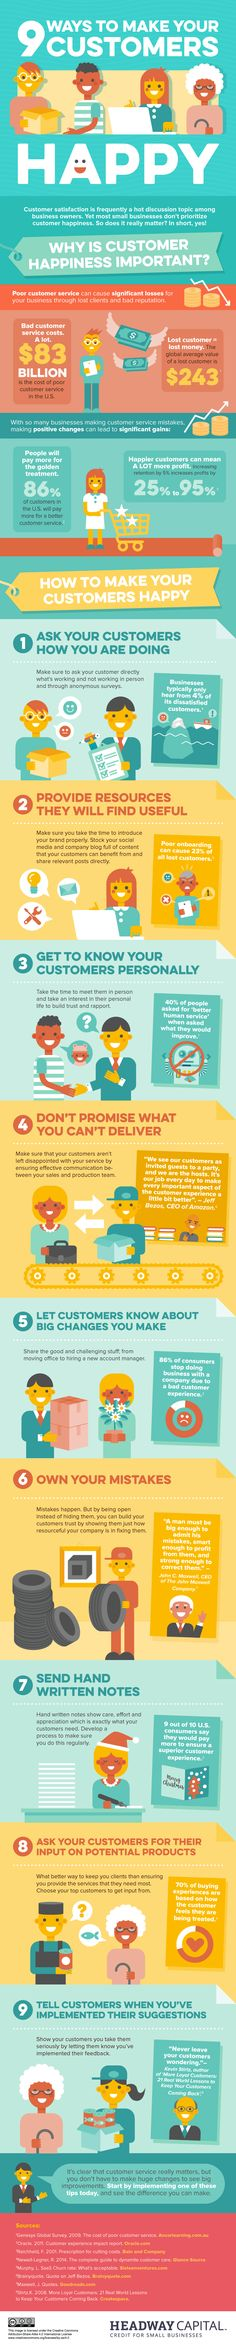 9 Ways to Make Your Customers Happy #Infographic #CustomerService